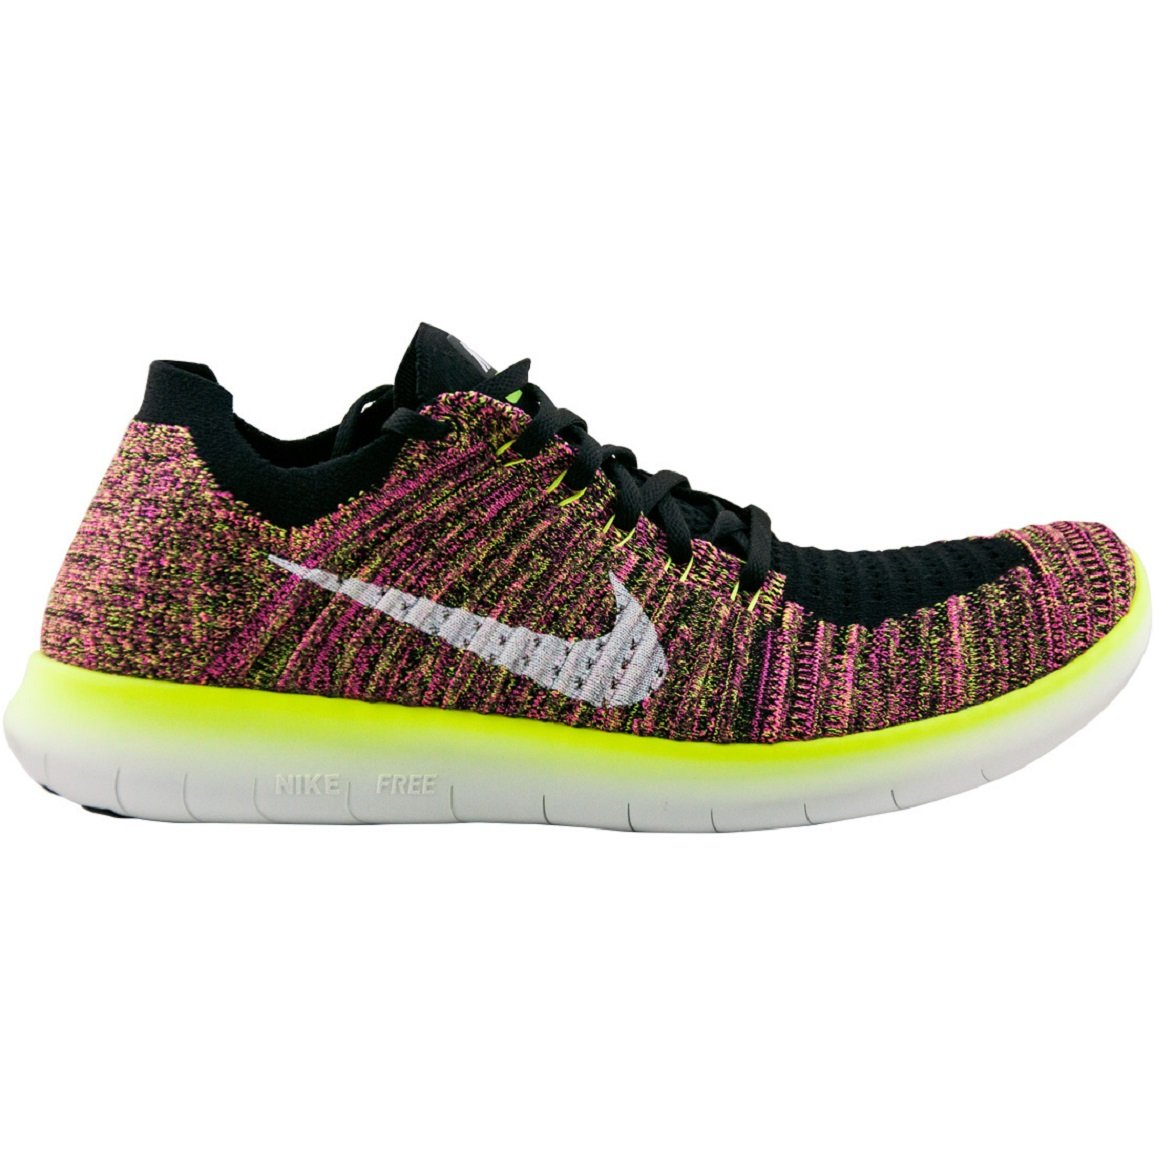 buy popular 4fe08 428d9 Galleon - NIKE Men s Free RN Flyknit Olympic Collection Running Shoes  Multi-Color 843430-999 (9)